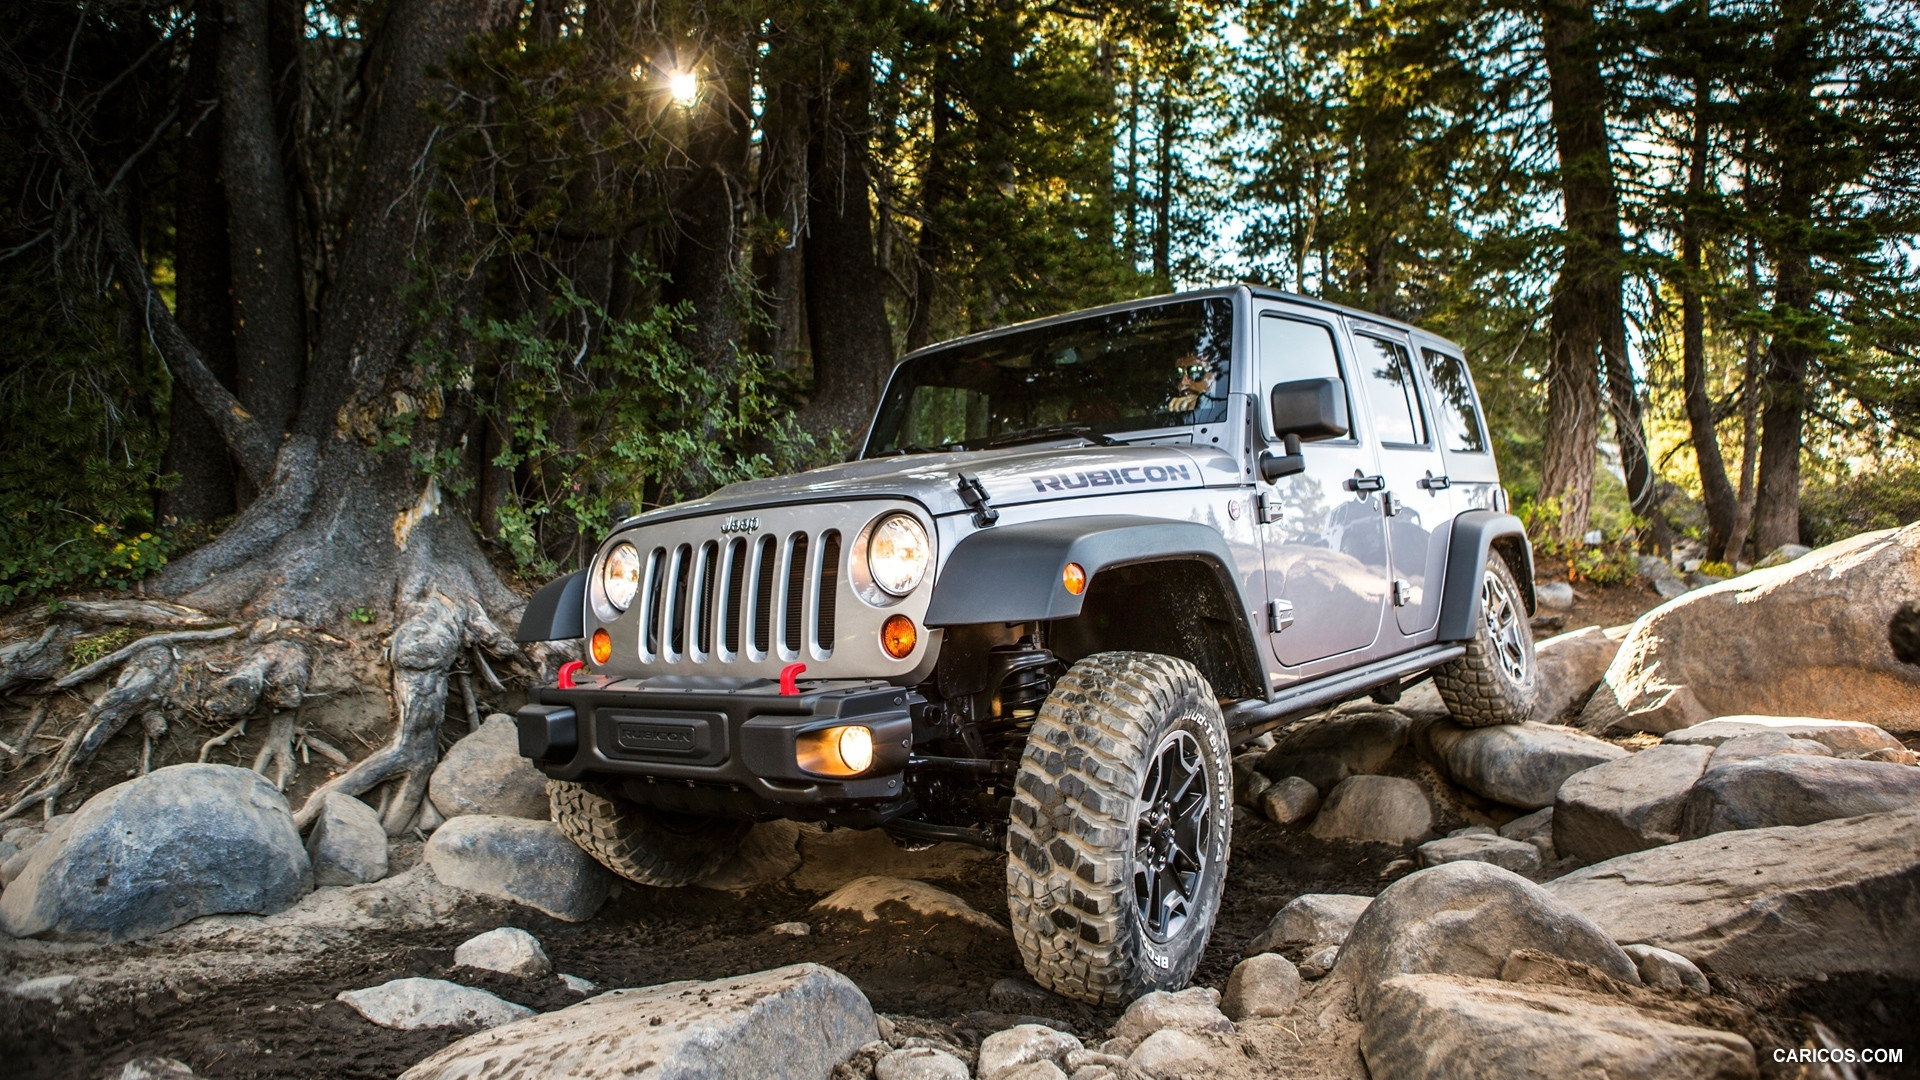 2013 jeep wrangler unlimited rubicon 10th anniversary edition | hd